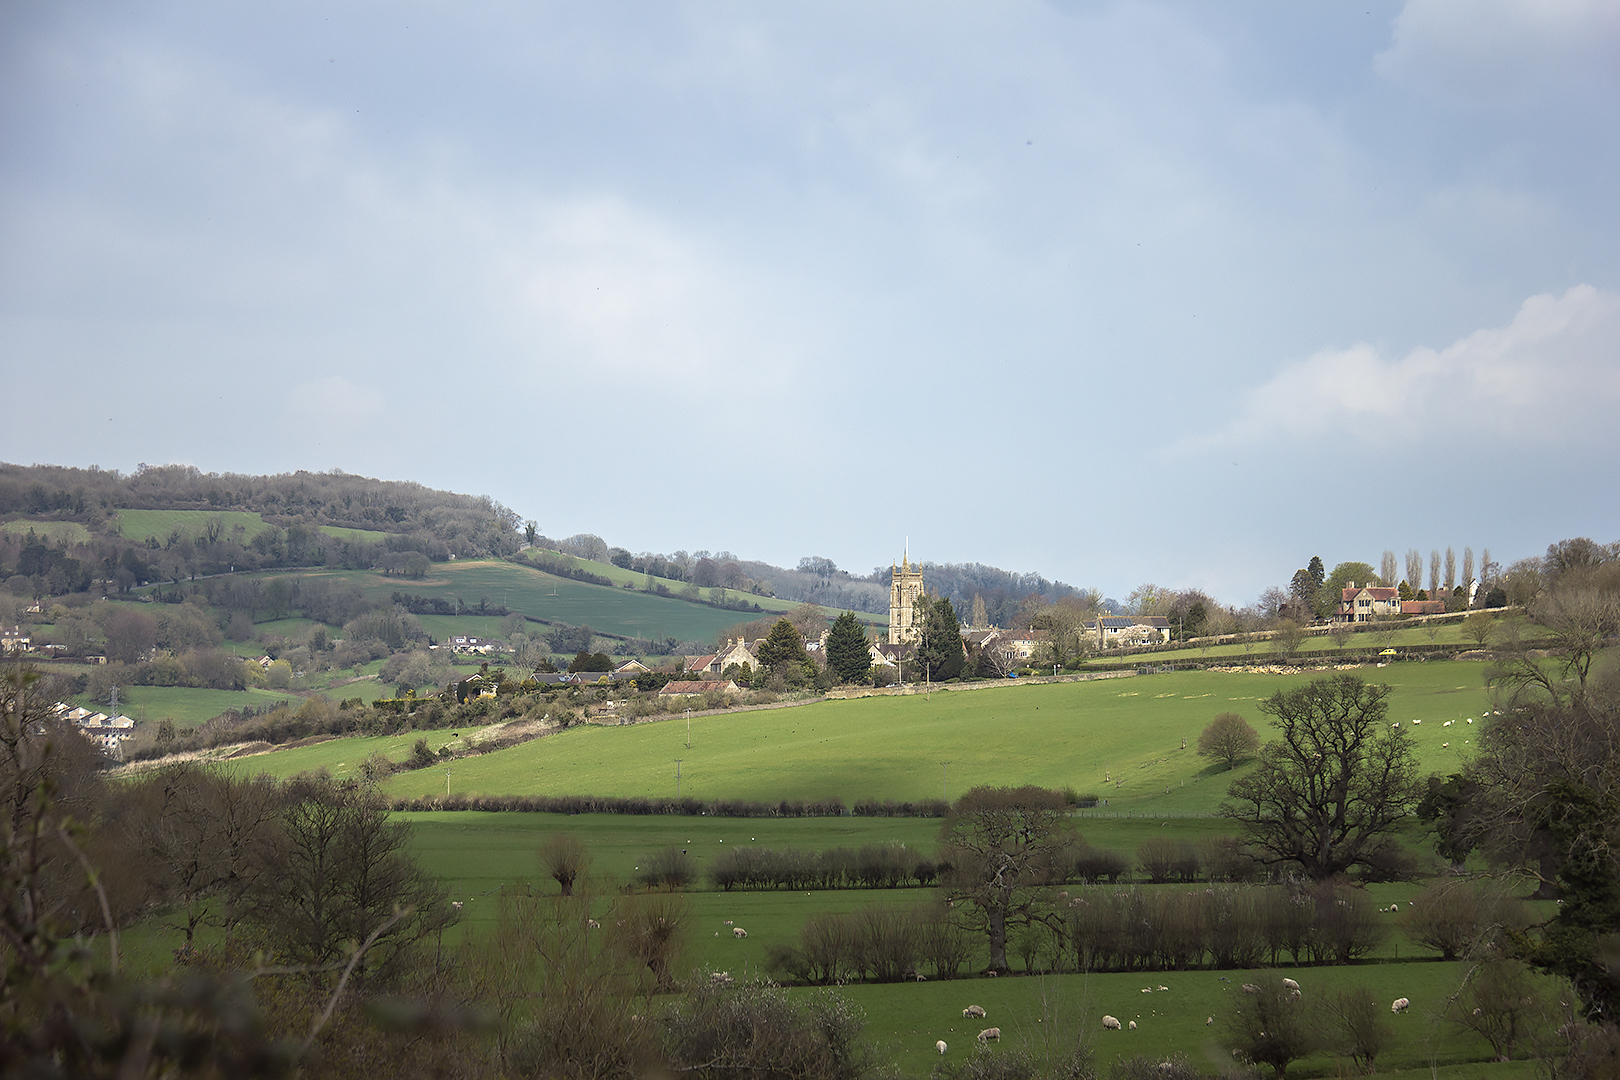 St Swithun's Bathford viewed from the towpath along the river Avon